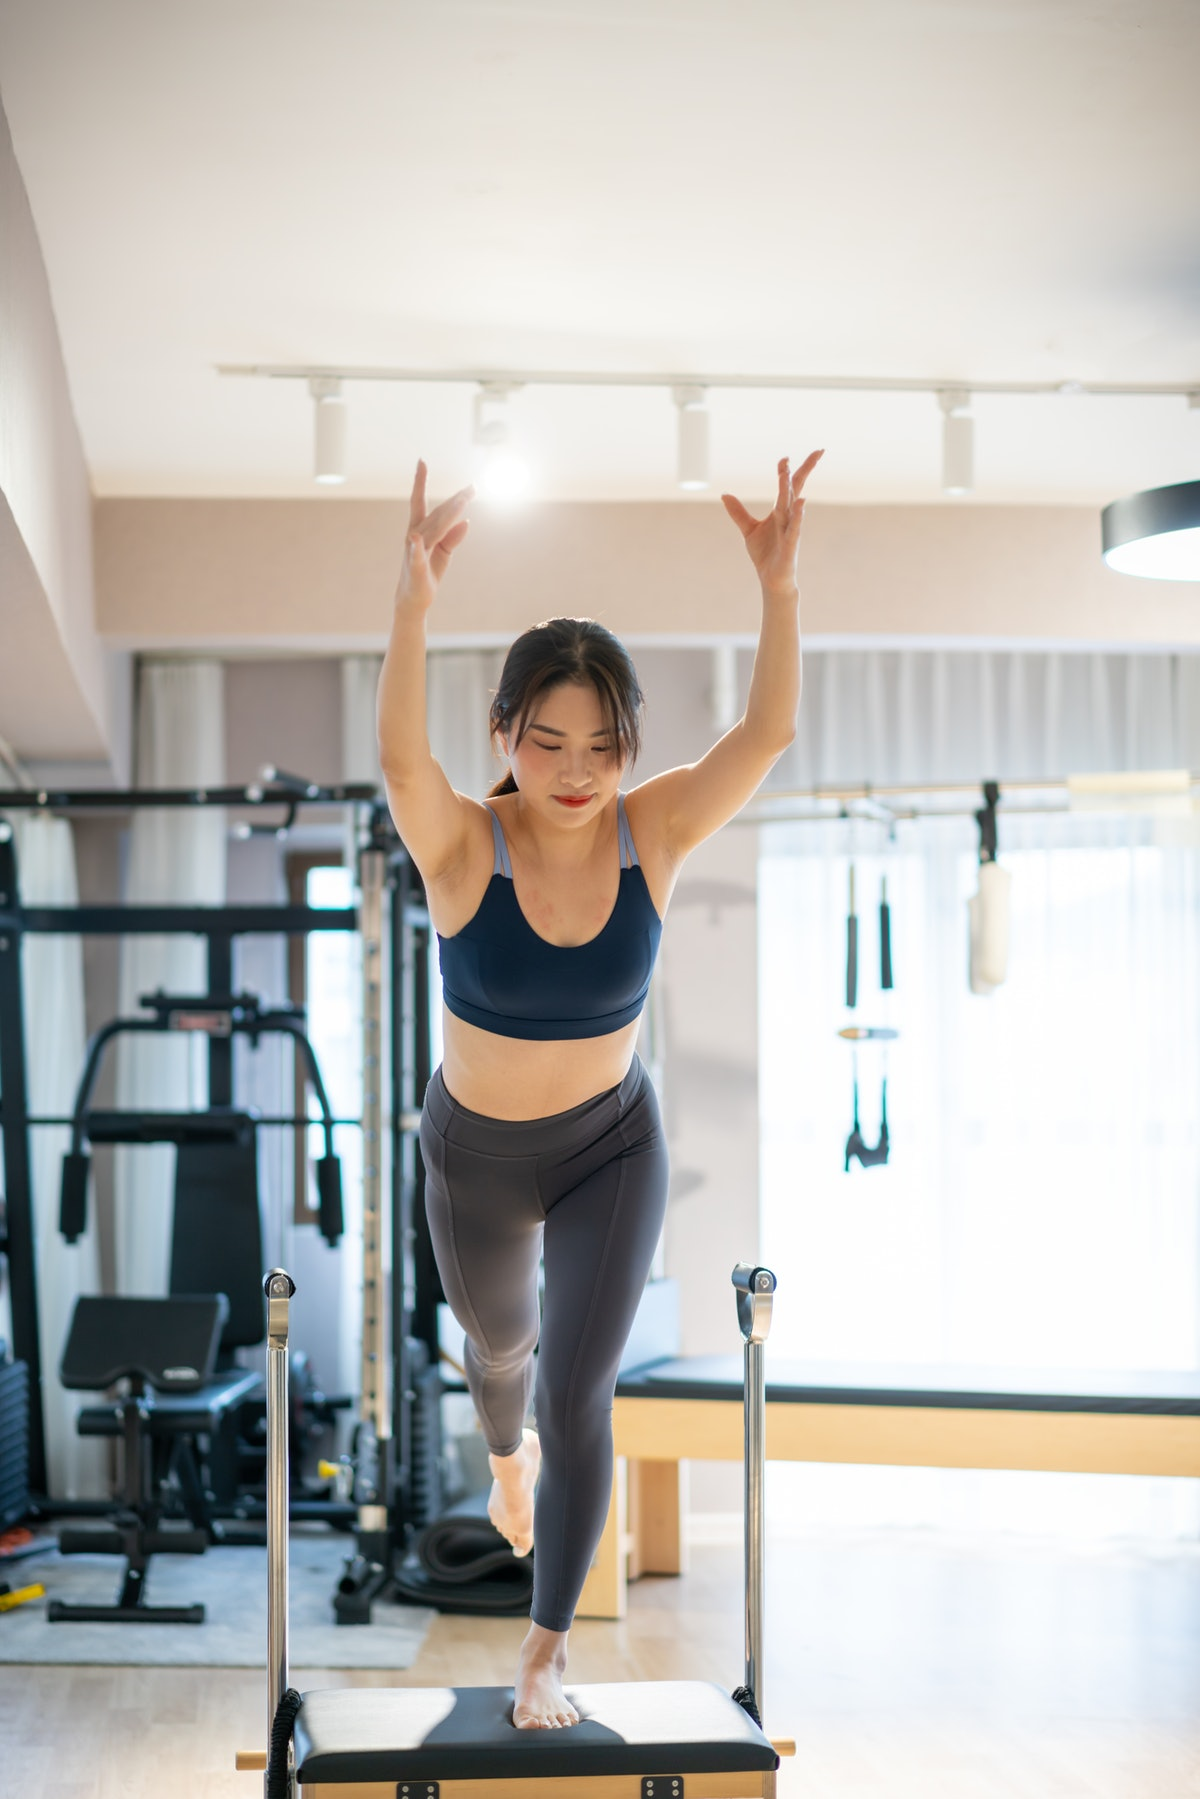 Try Pilates on or off a machine to make the workout work for you.